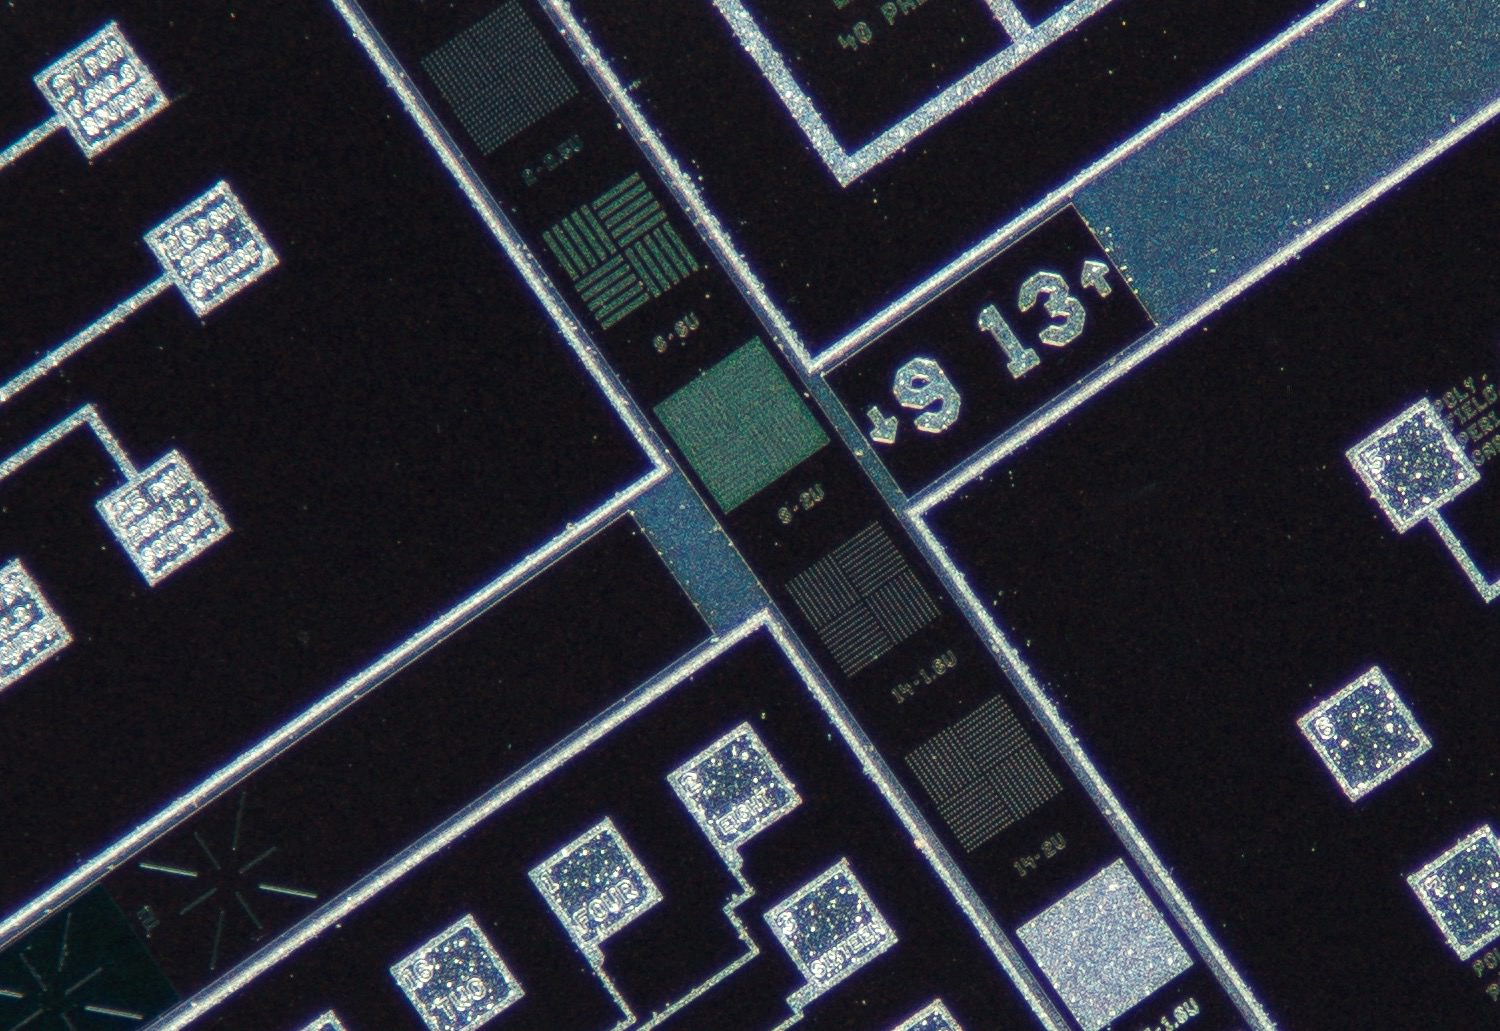 Nikon CF N Plan Achromat 4X/0.13 Microscope Objective 100% actual pixel view center crop. Clicking on an image will open a larger version.